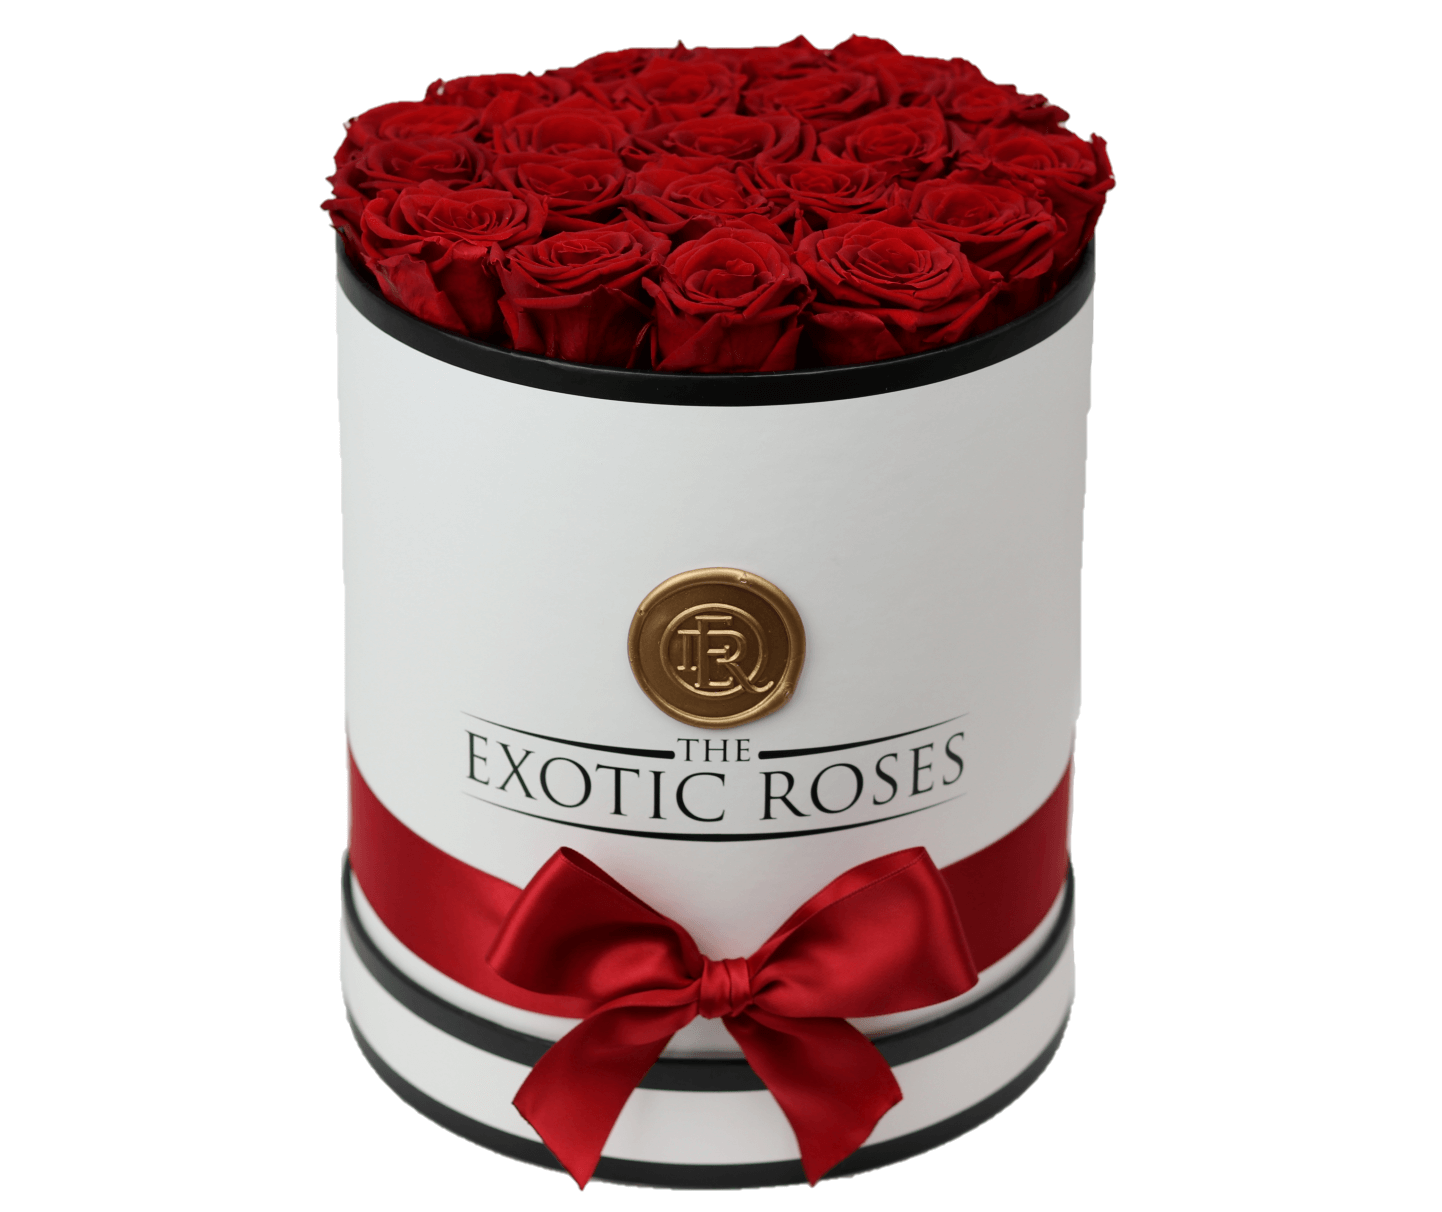 Medium Round - Eternity Roses - The Exotic Roses